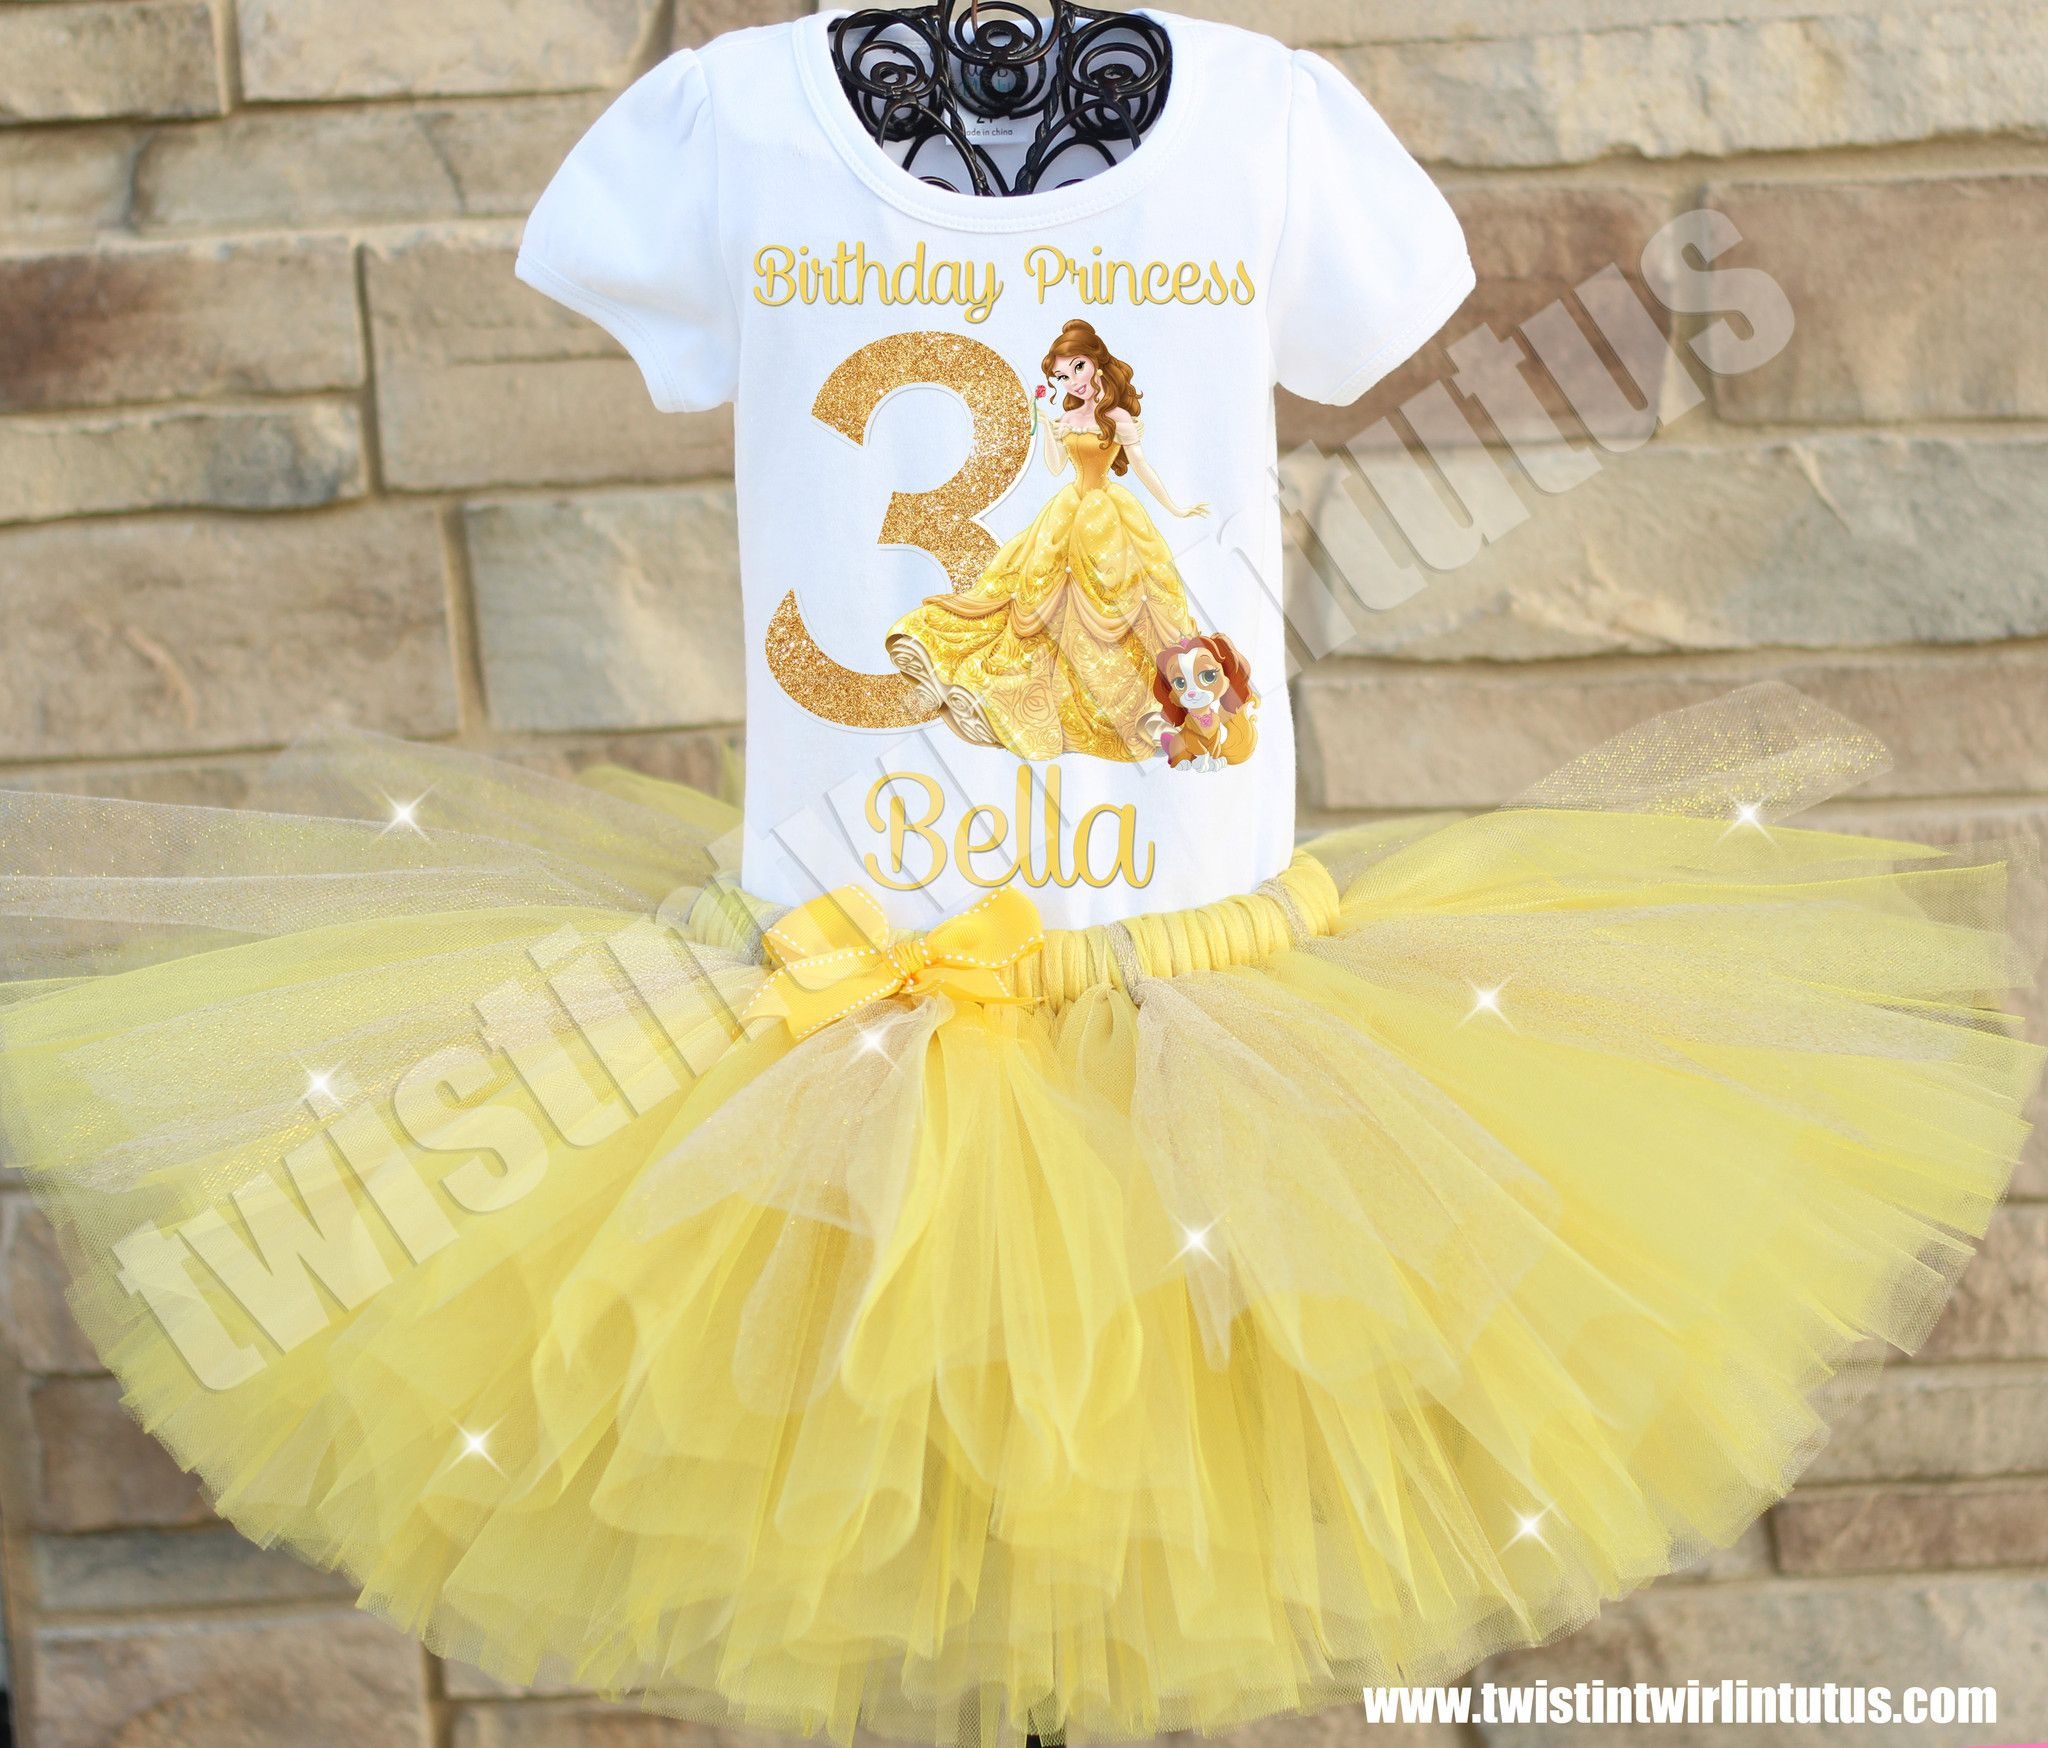 47329ef2c Princess Belle Birthday Tutu outfit | Princess Belle Birthday Party Ideas |  Beauty and the Beast